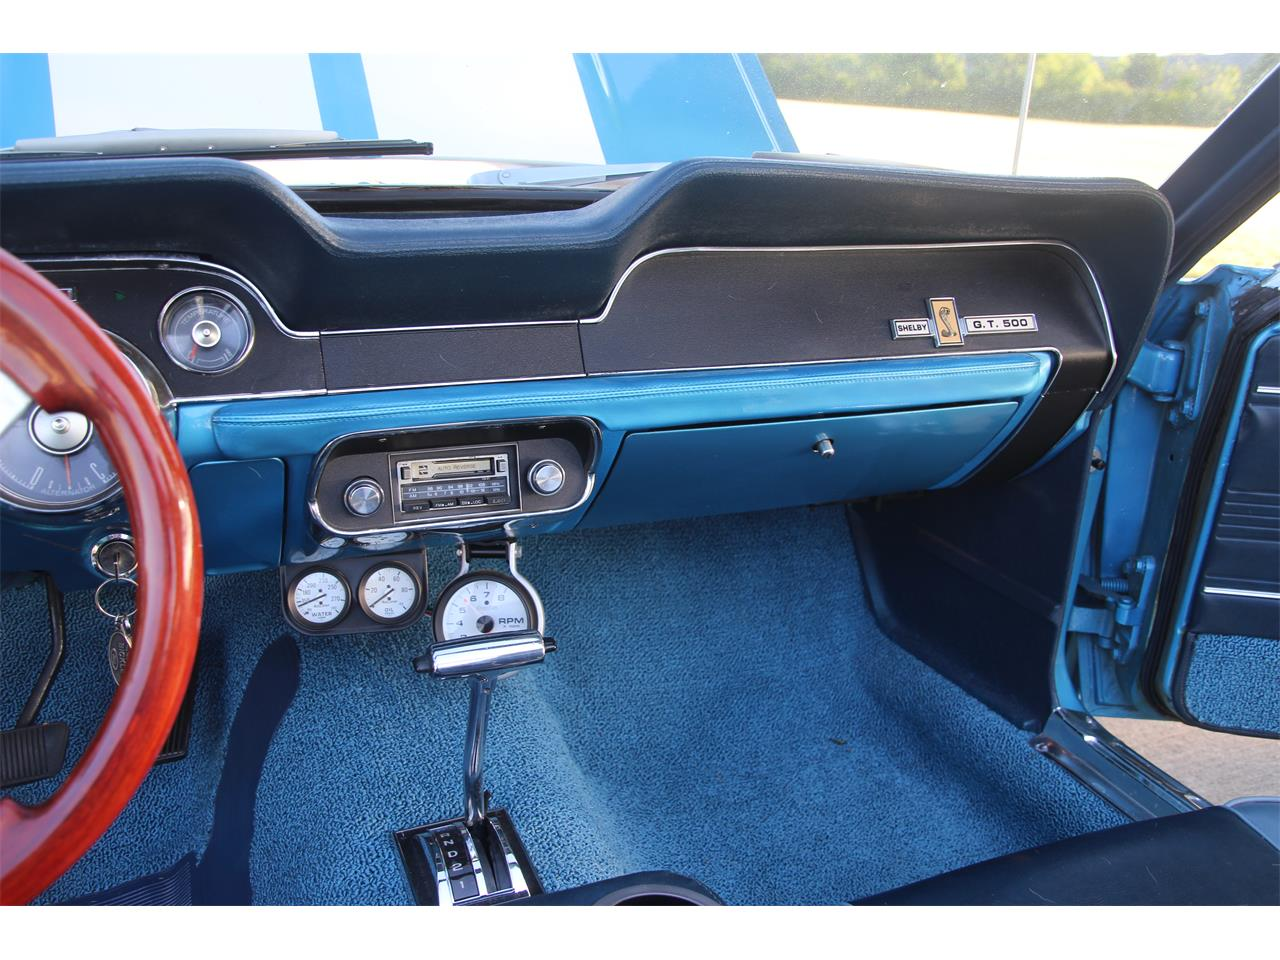 Large Picture of Classic 1967 Ford Mustang Shelby GT500  located in Richardson Texas - $41,000.00 - NP08